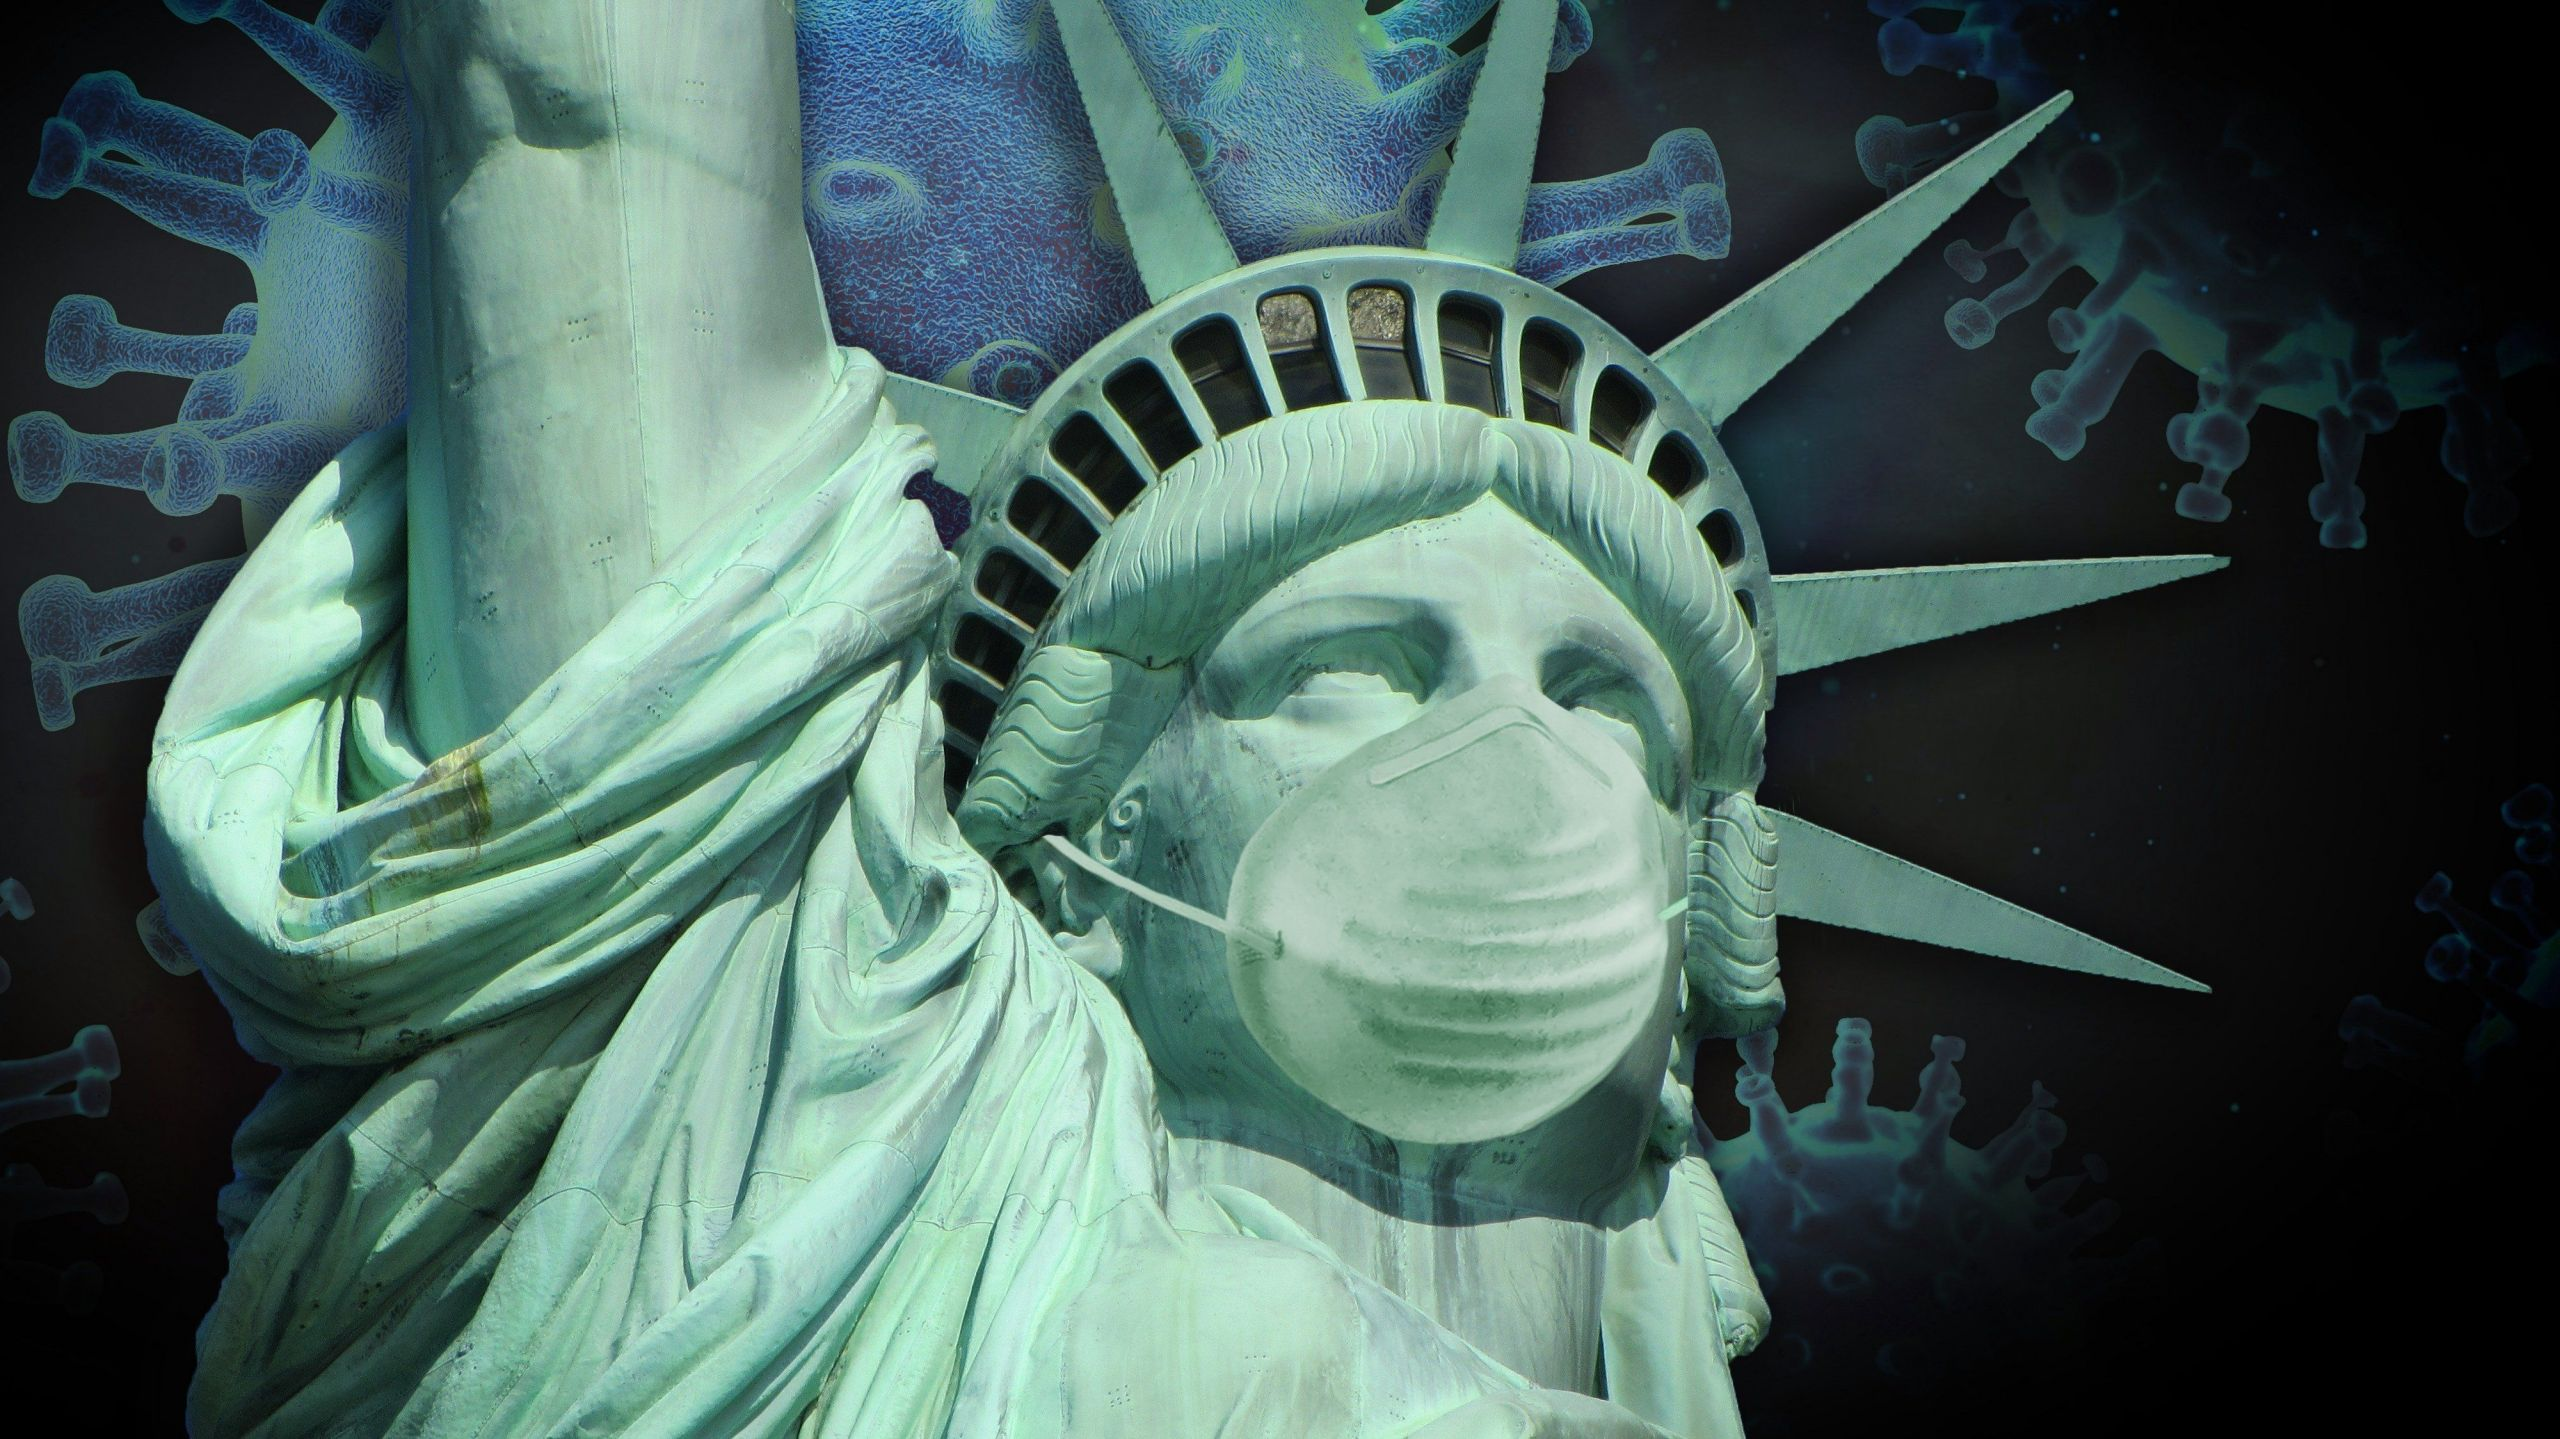 virus, america, statue of liberty